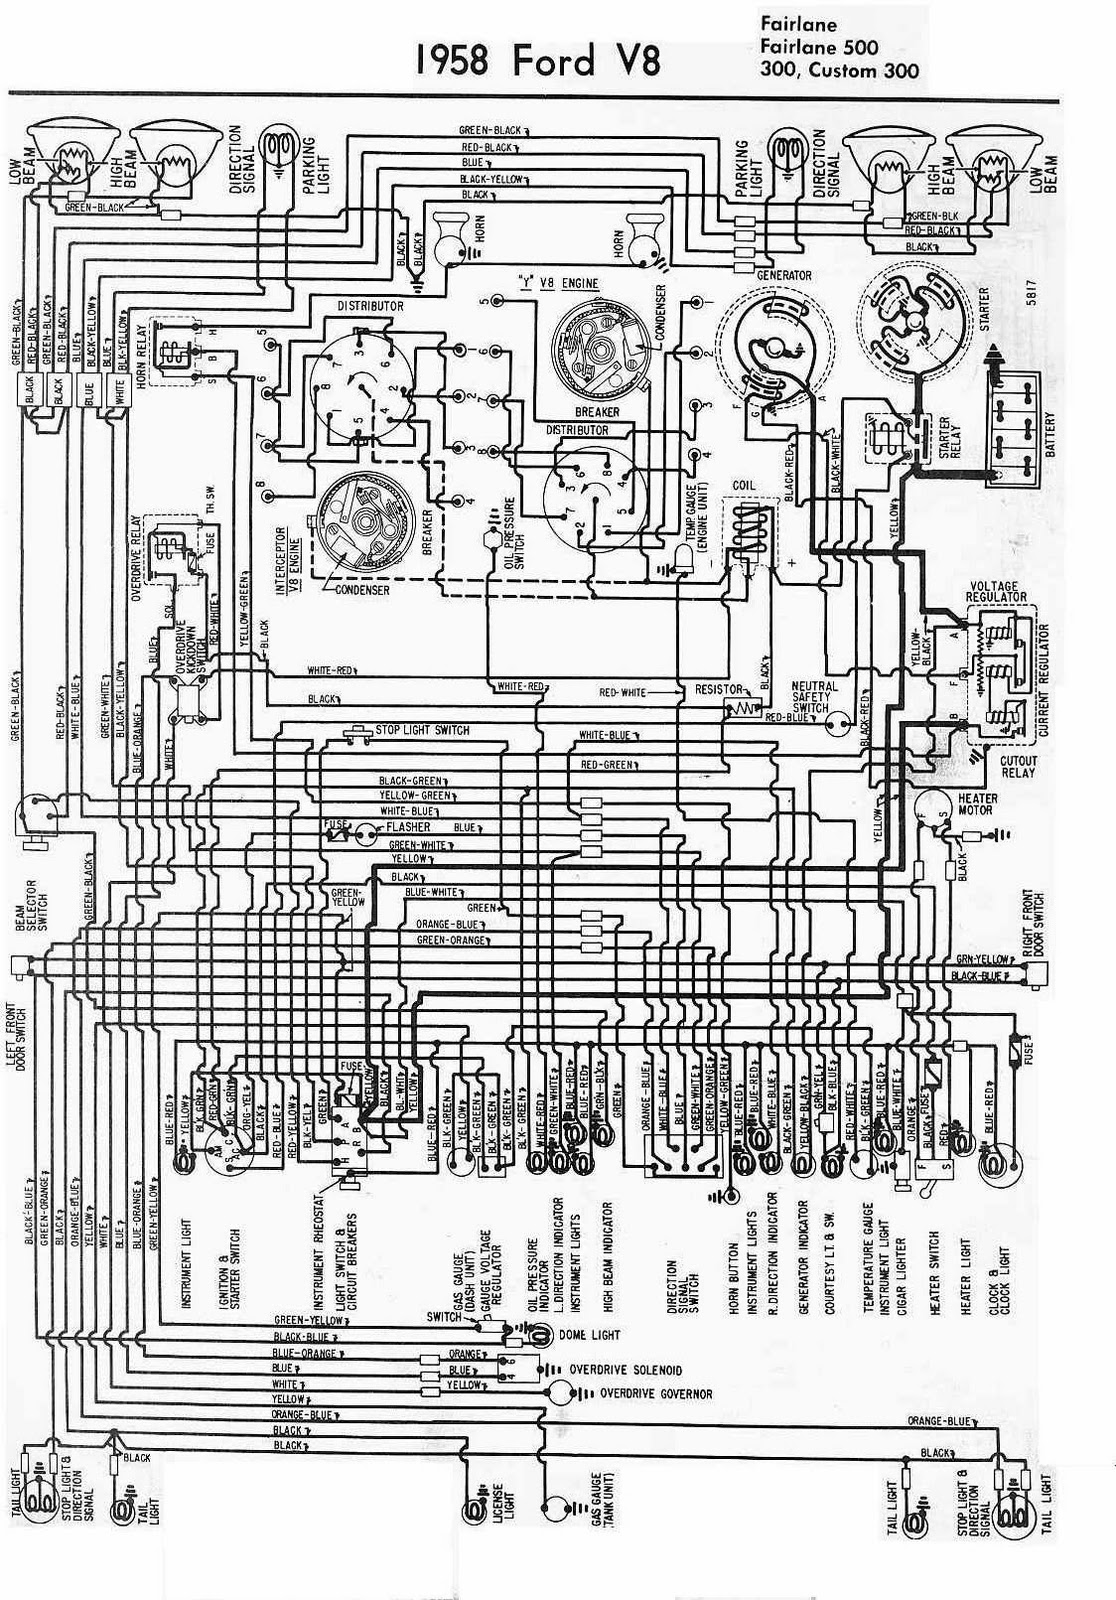 medium resolution of 1955 ford thunderbird also ford falcon fuse panel diagram 1966 ford thunderbird fuse panel diagram as well 1958 ford thunderbird